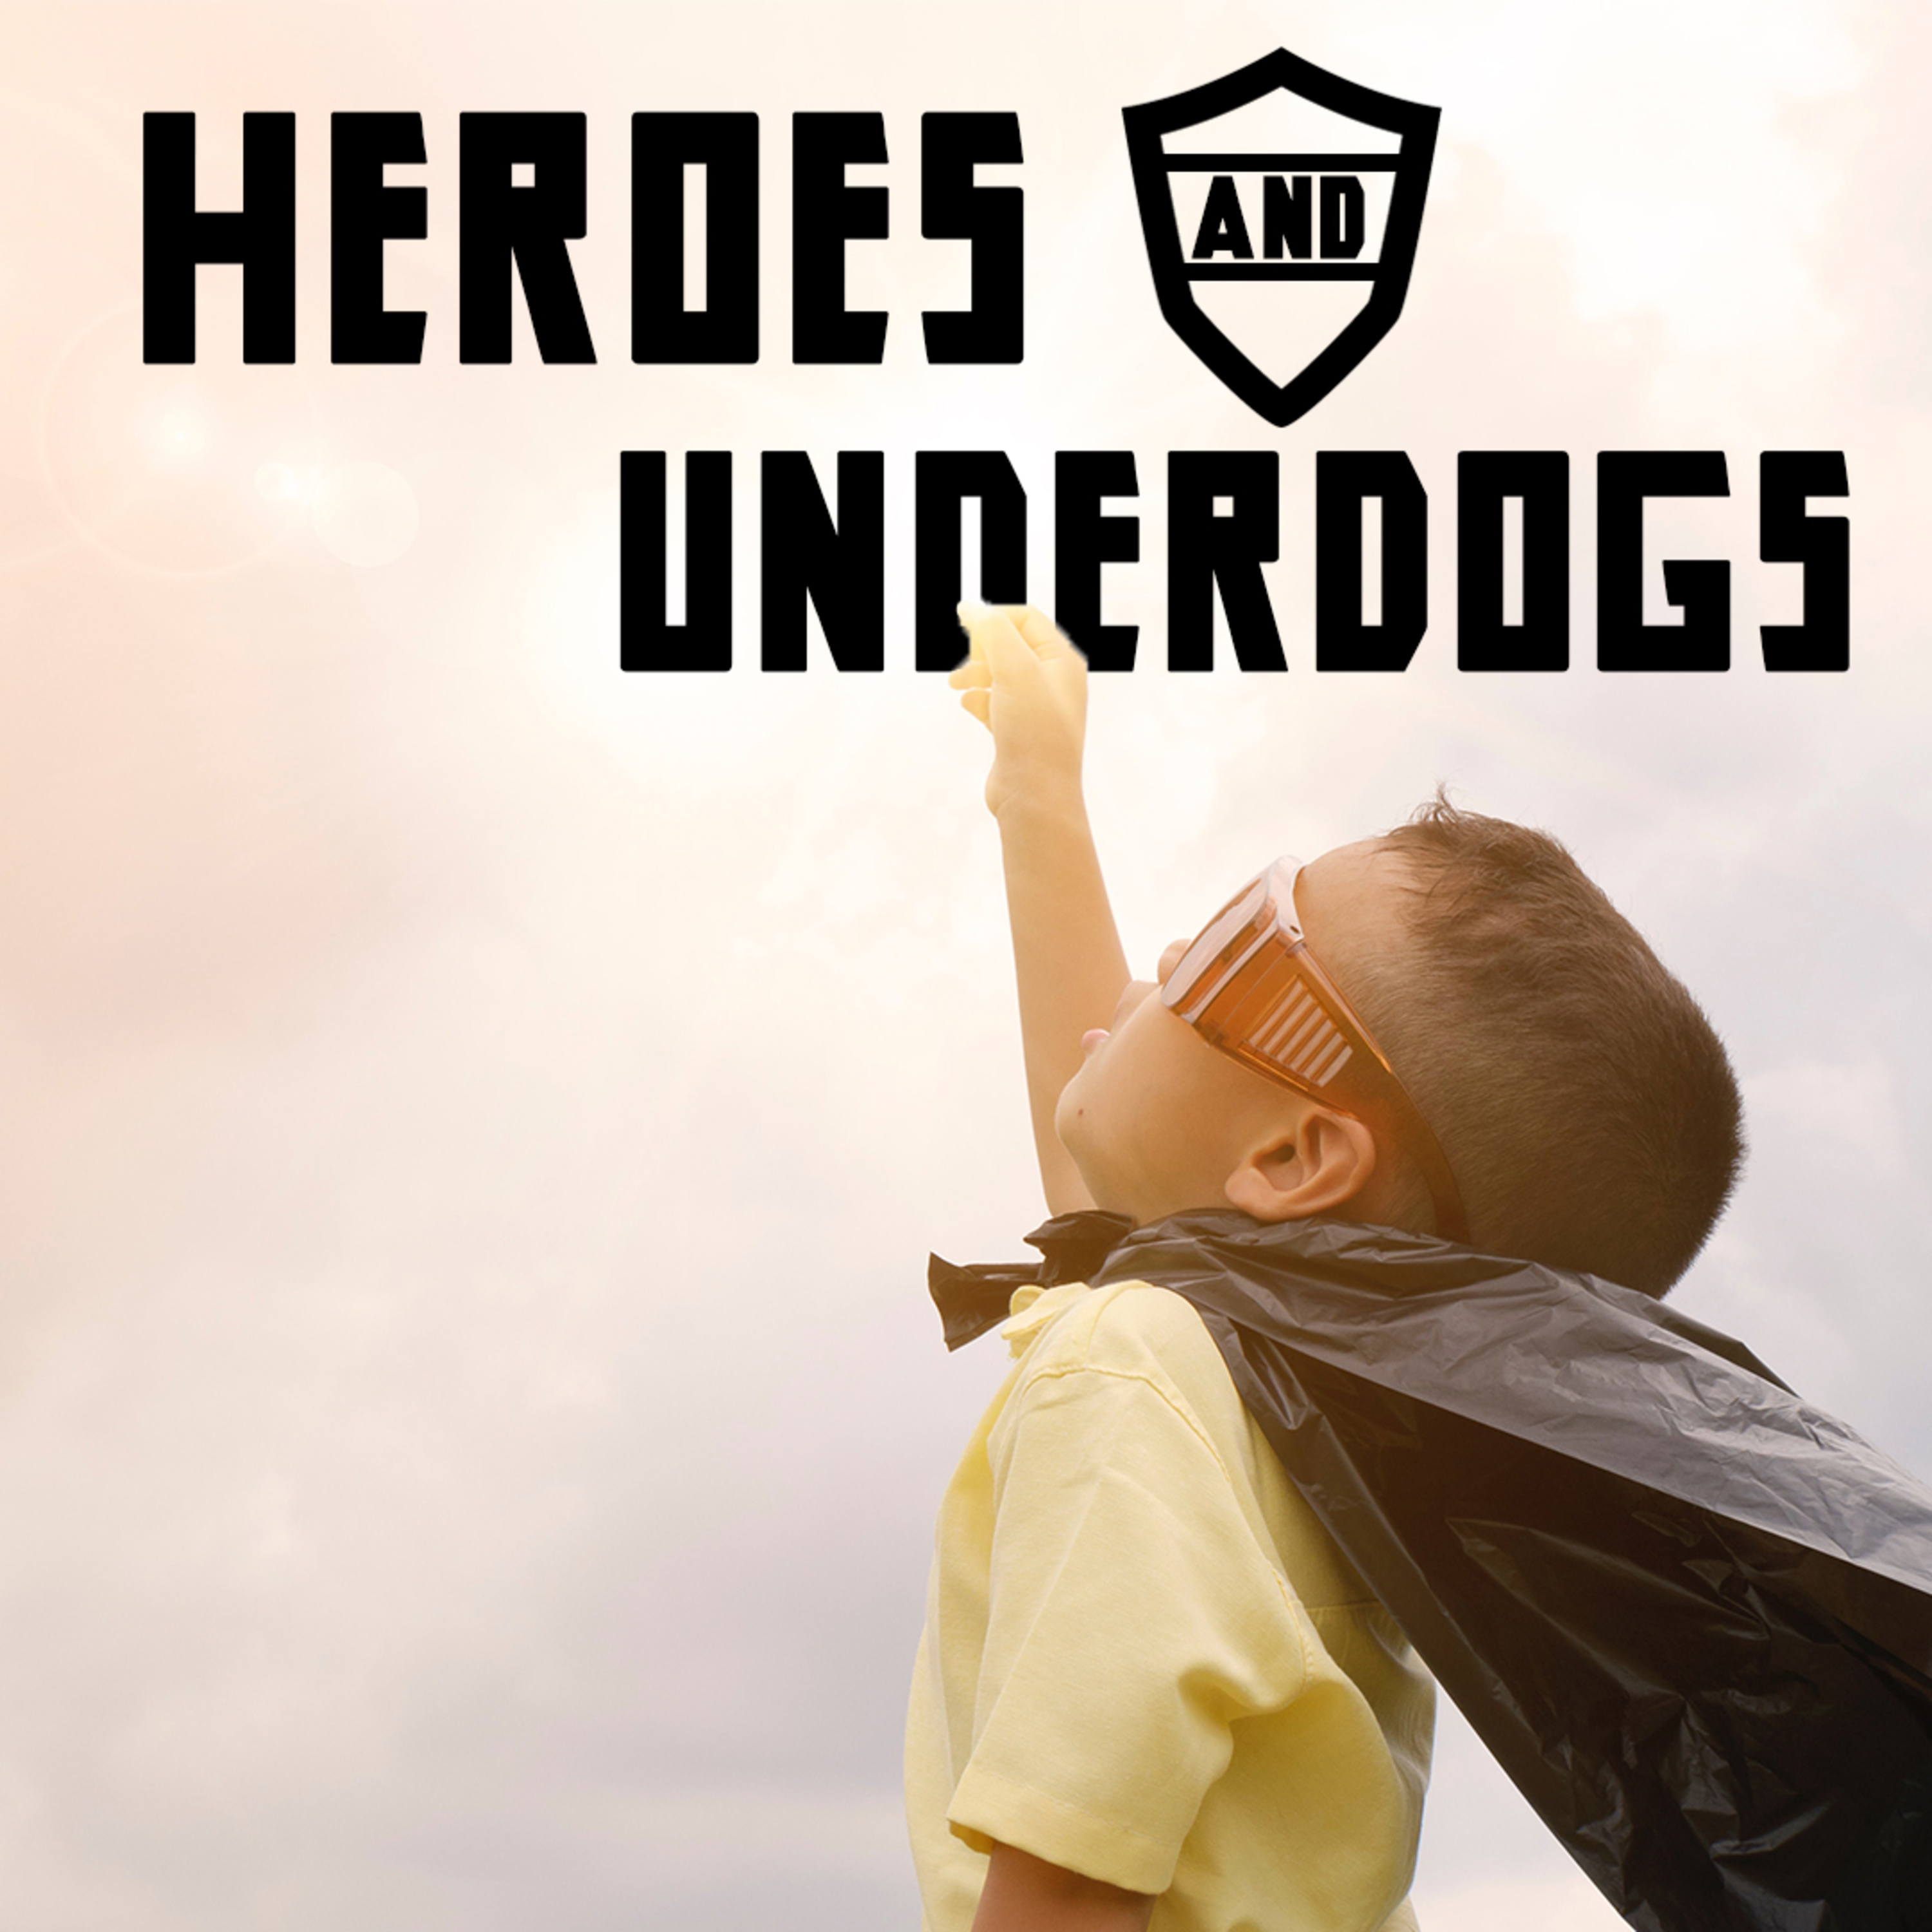 Heroes and Underdogs #26